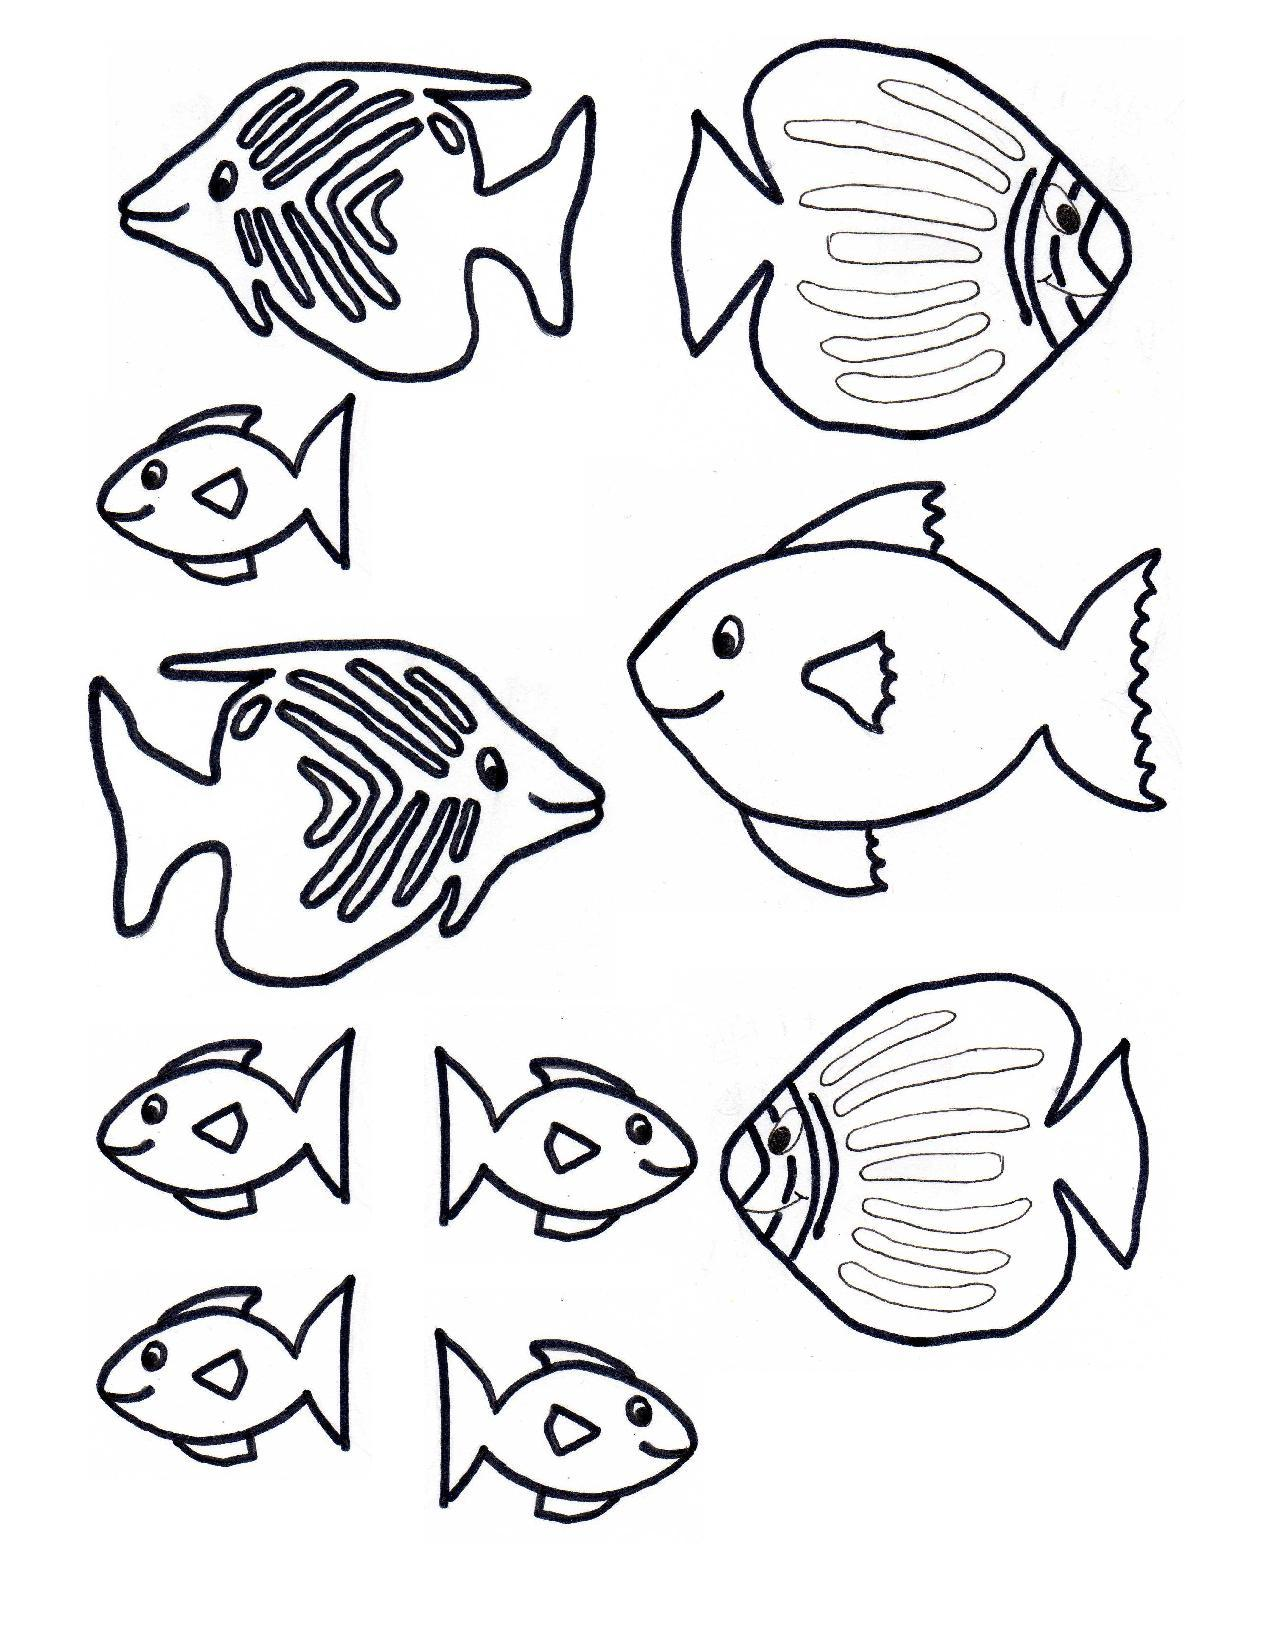 Free Fish Template, Download Free Clip Art, Free Clip Art